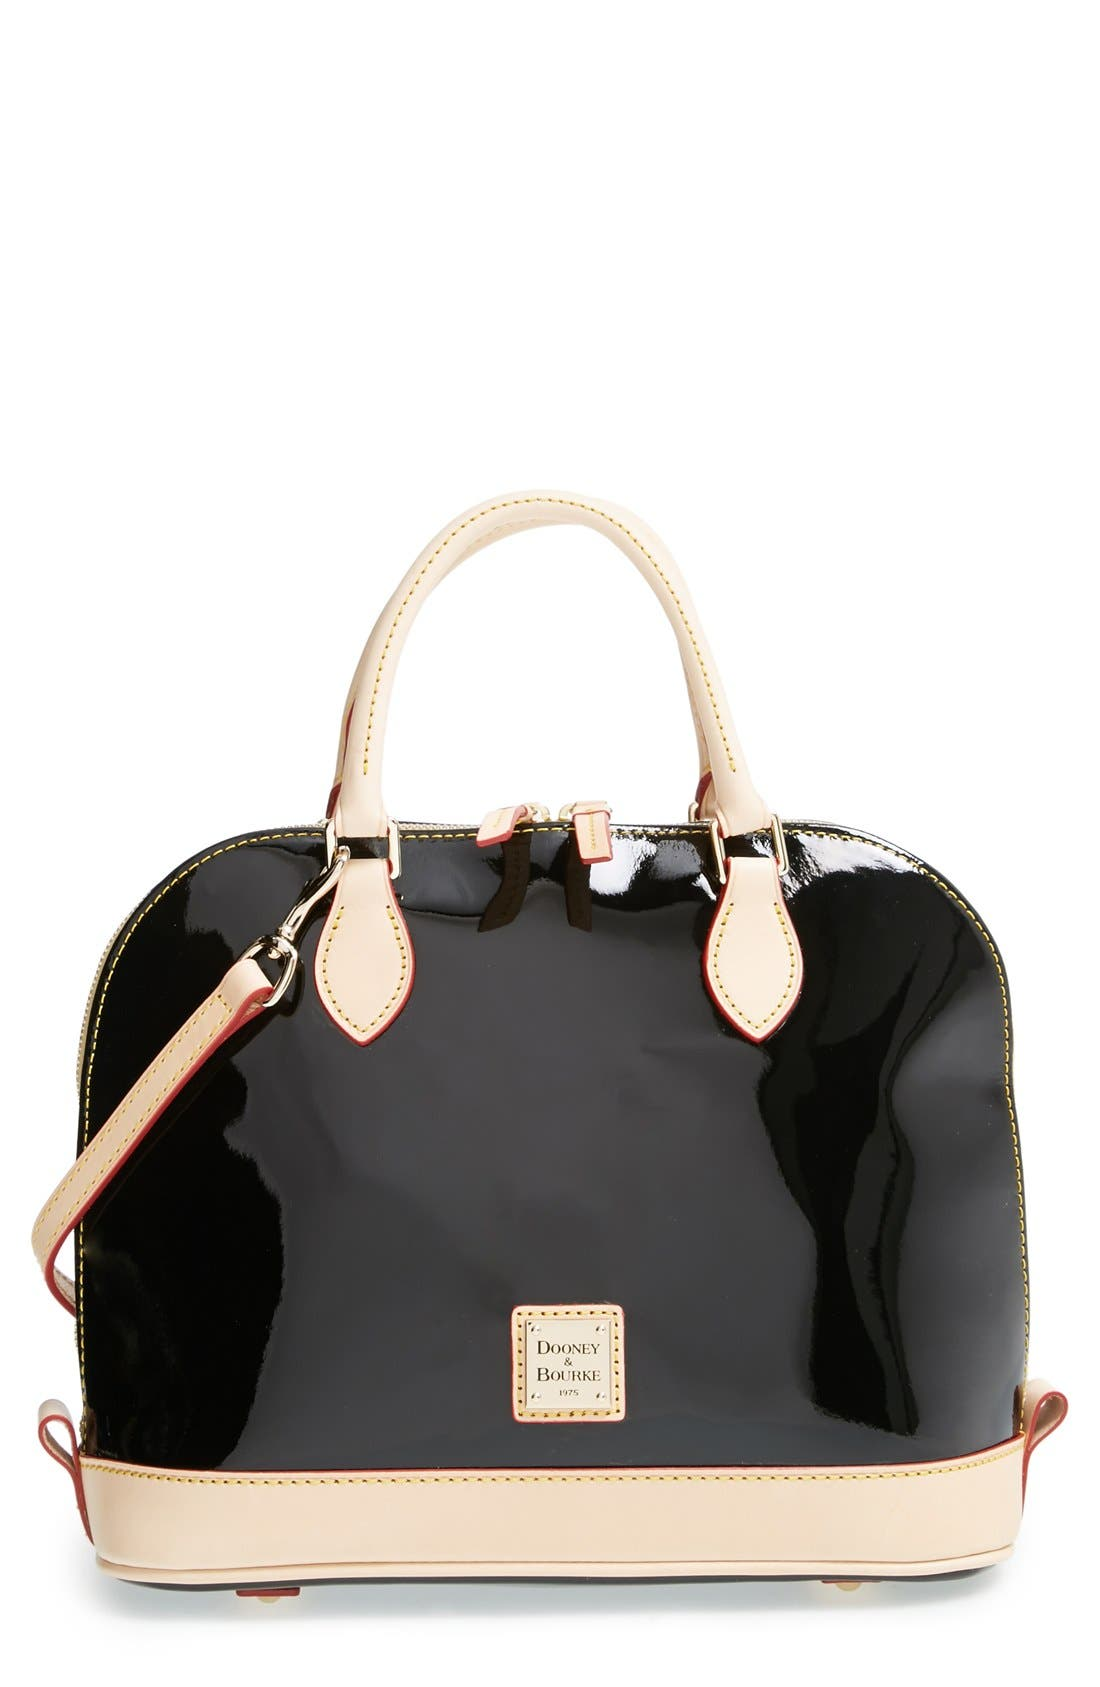 Alternate Image 1 Selected - Dooney & Bourke Patent Leather Satchel